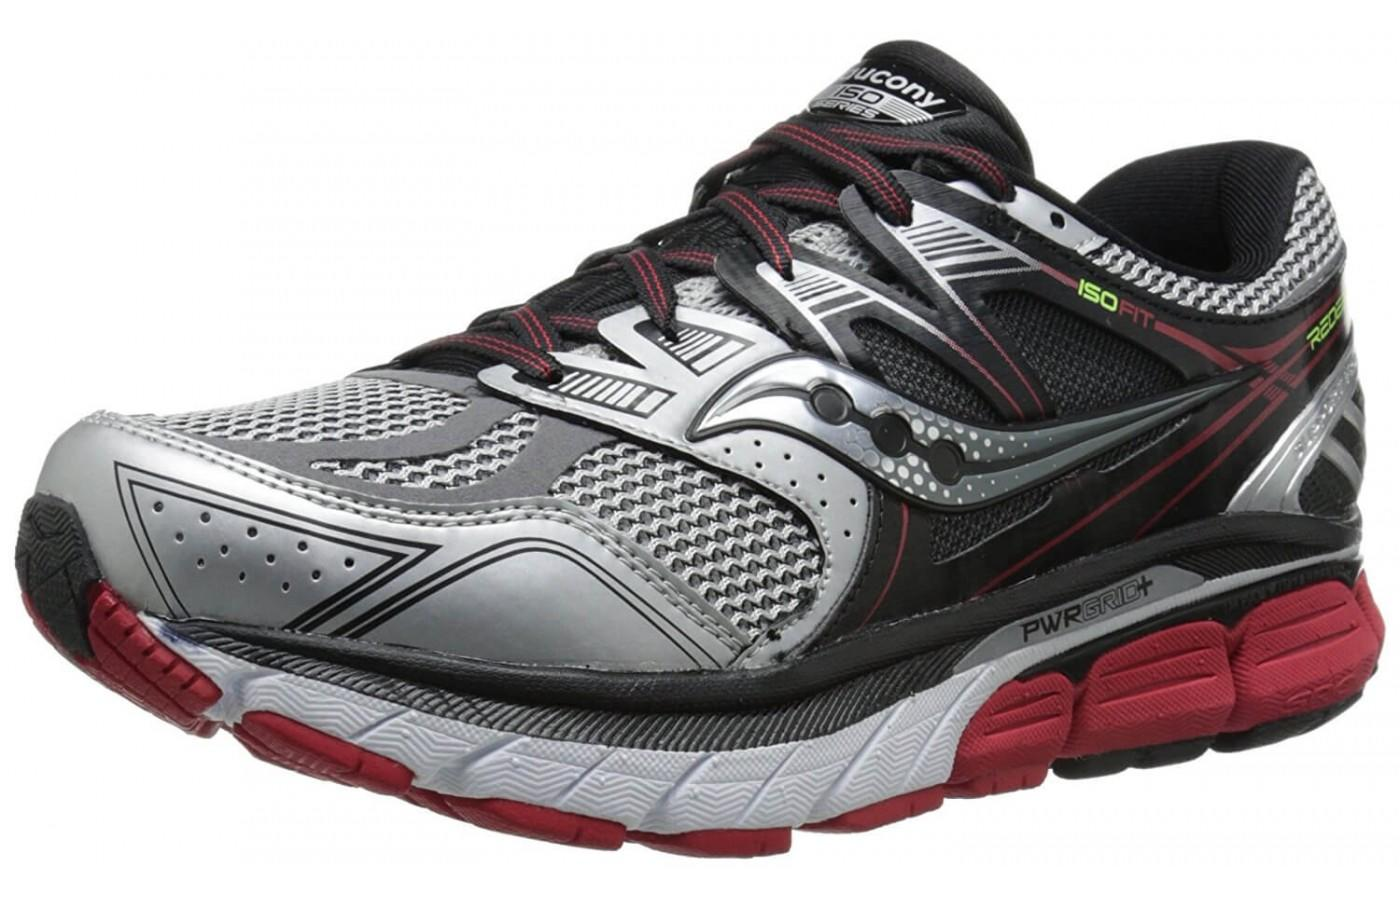 Saucony Redeemer ISO has a distinct look